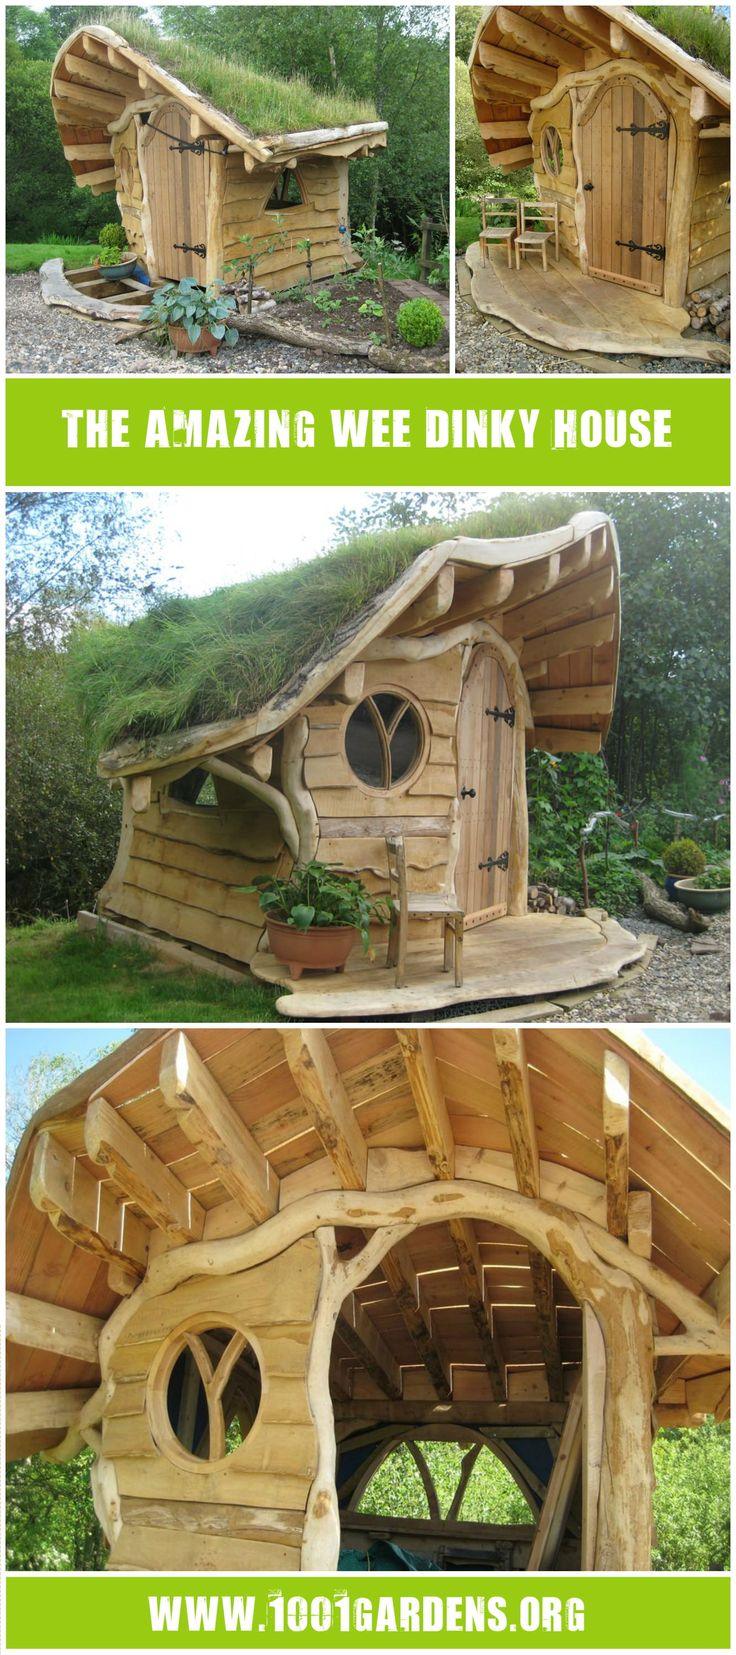 This hut remind us the ones of our child time, like a kids playhouse! Initially, the project made by thinkingwood was a child's playhouse, but the project